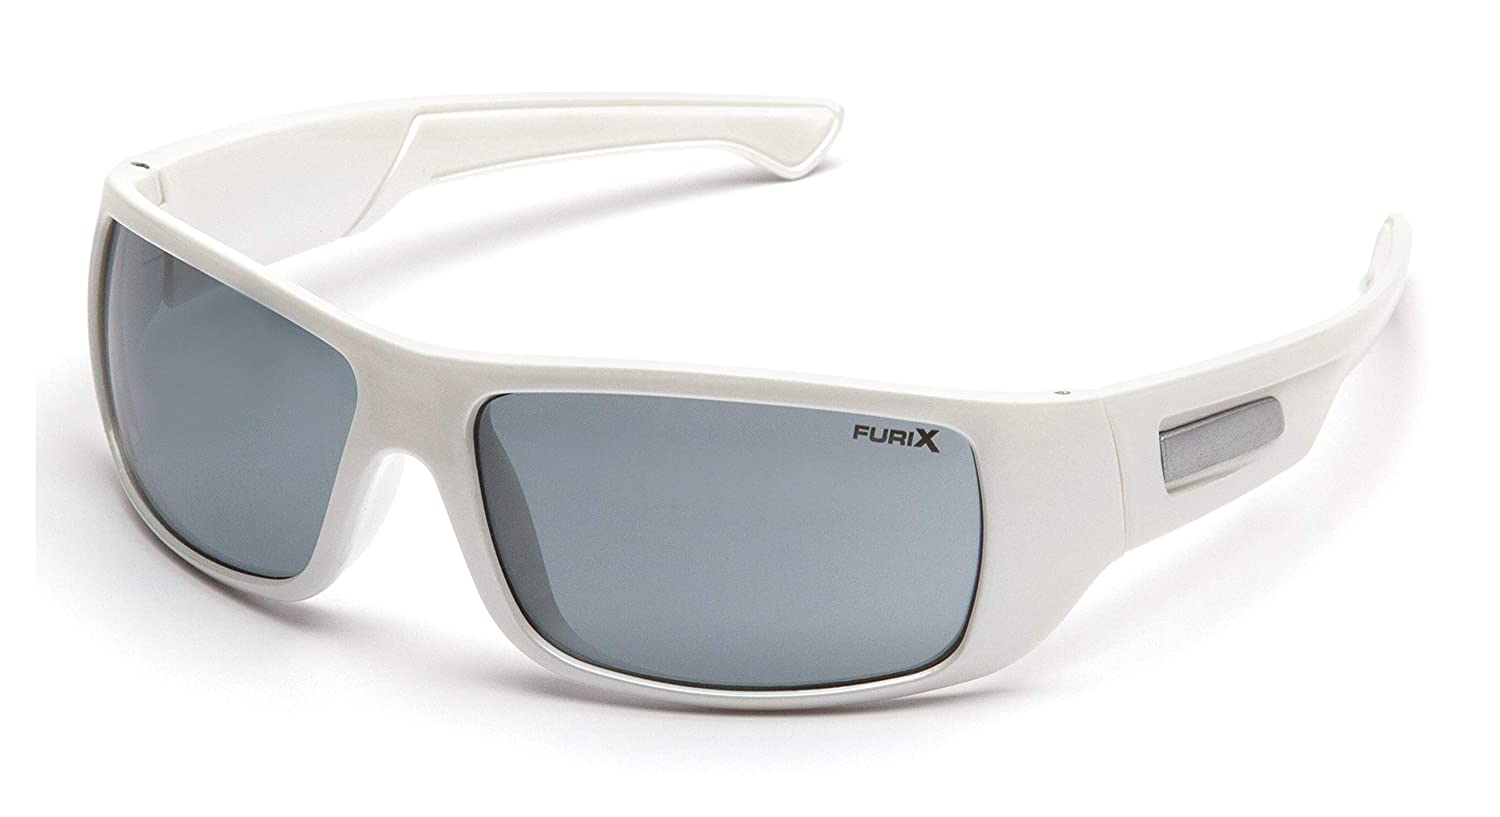 White Frame//Gray Anti-Fog Pyramex Furix Safety Glasses